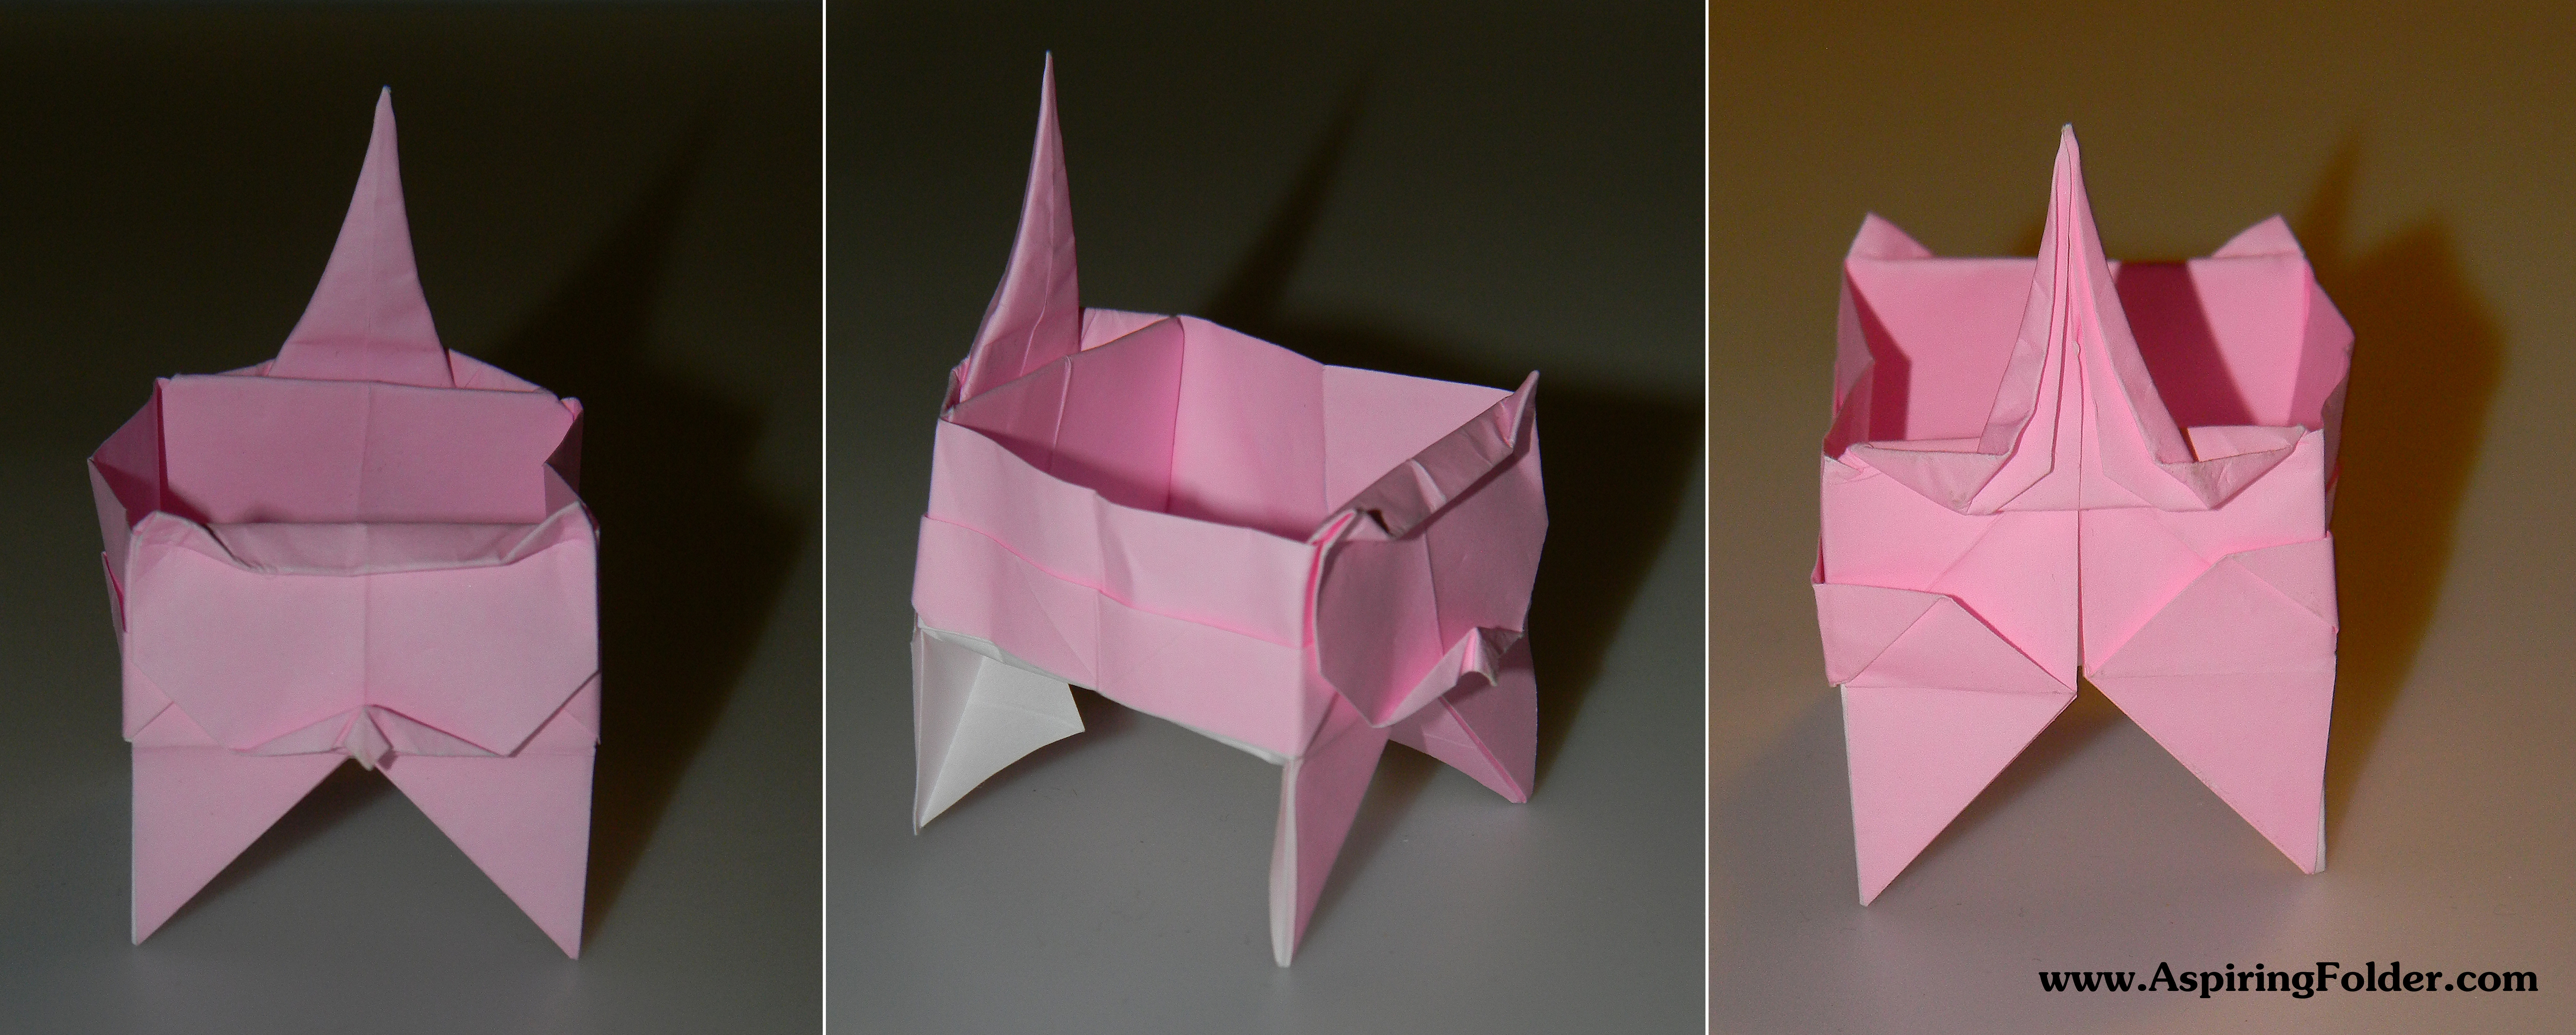 Origami Cat And Box